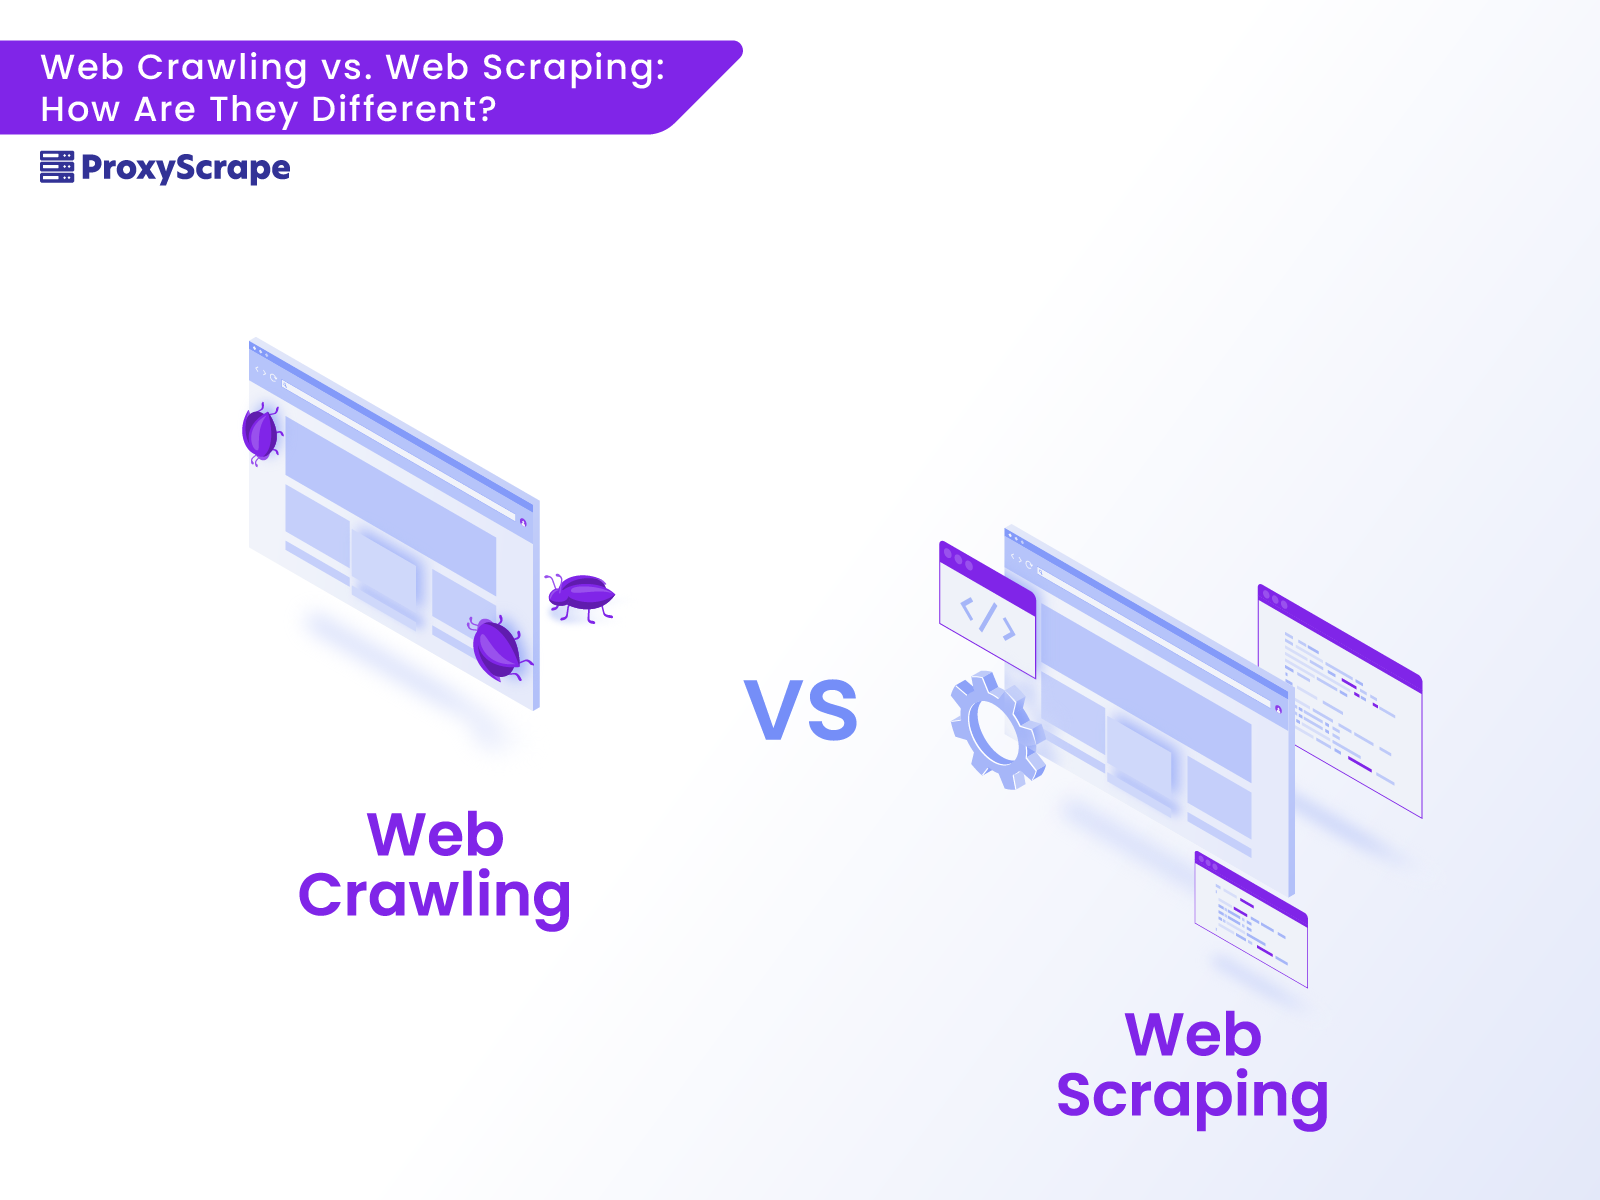 Web Crawling vs. Web Scraping: How Are They Different?